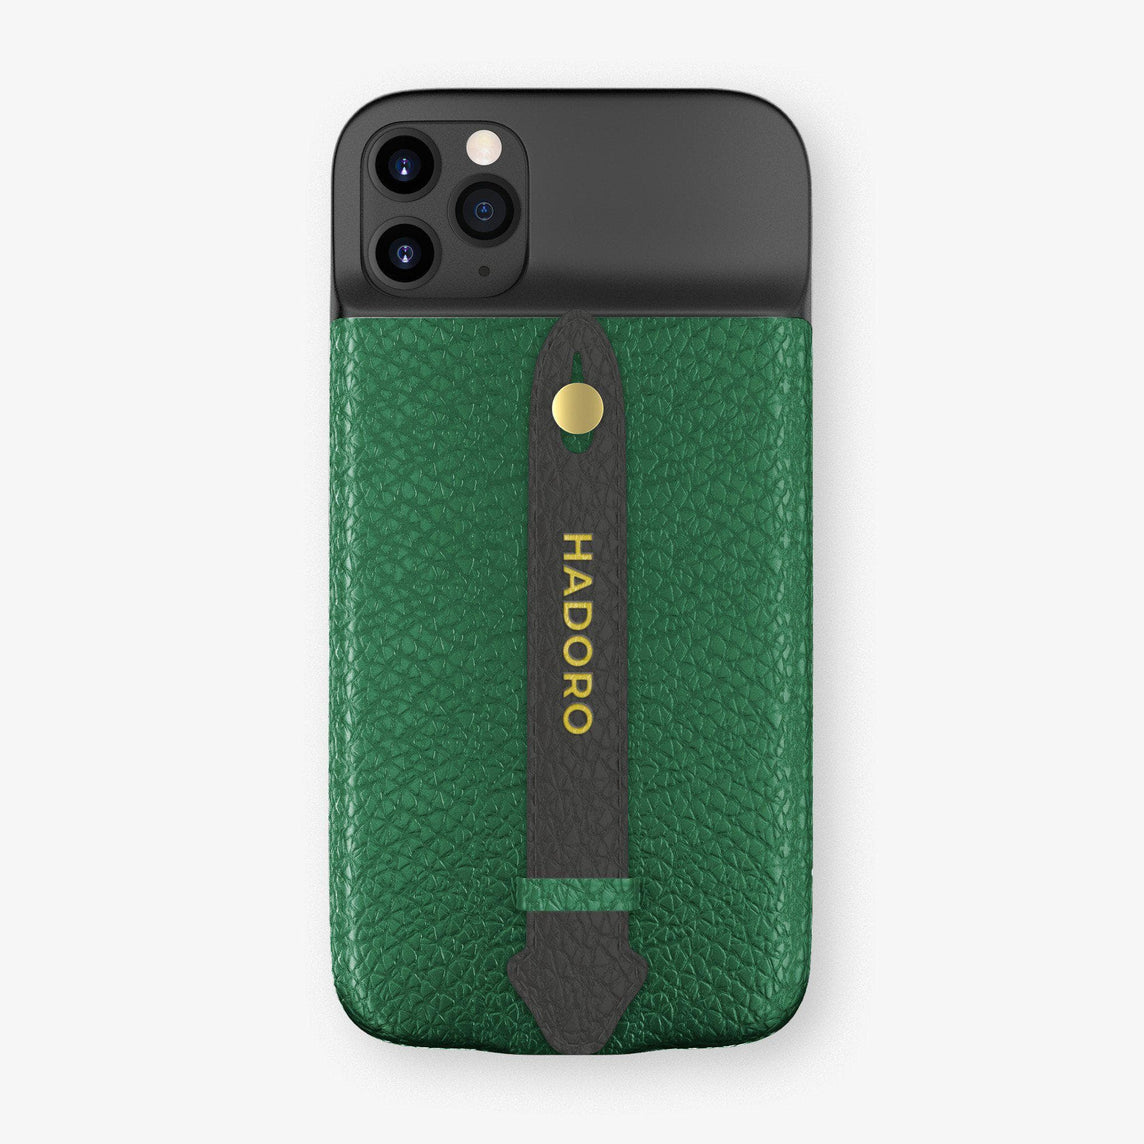 Calfskin Battery Finger Case for iPhone 11 Pro Max | Green/Anthracite - Yellow Gold without-personalization